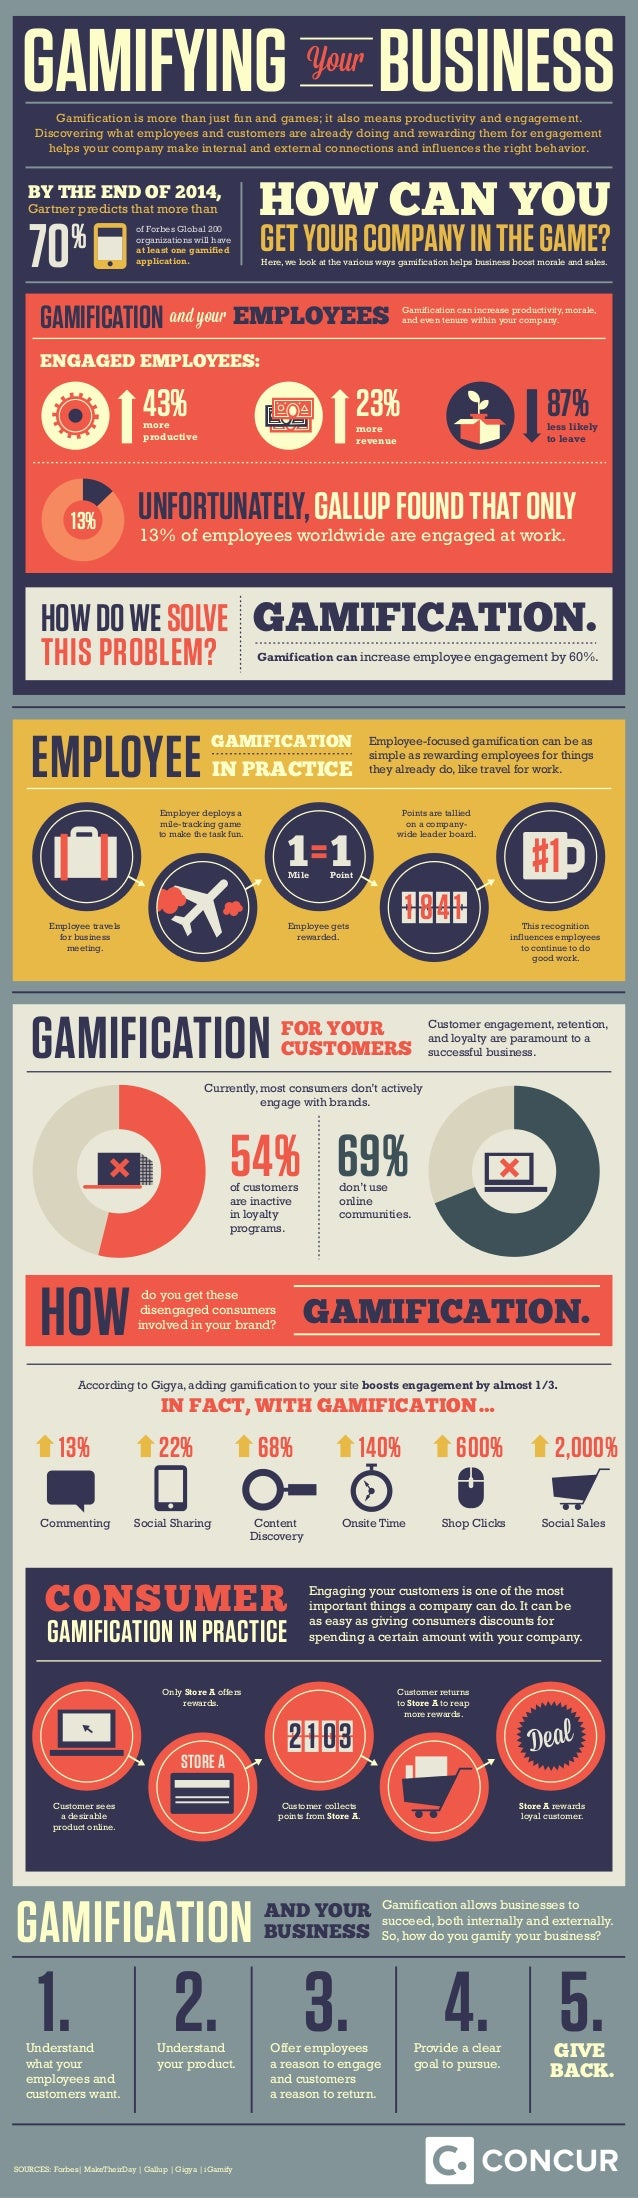 GAMIFYING Your Gamification is more than just fun and games; it also means productivity and engagement. Discovering what e...